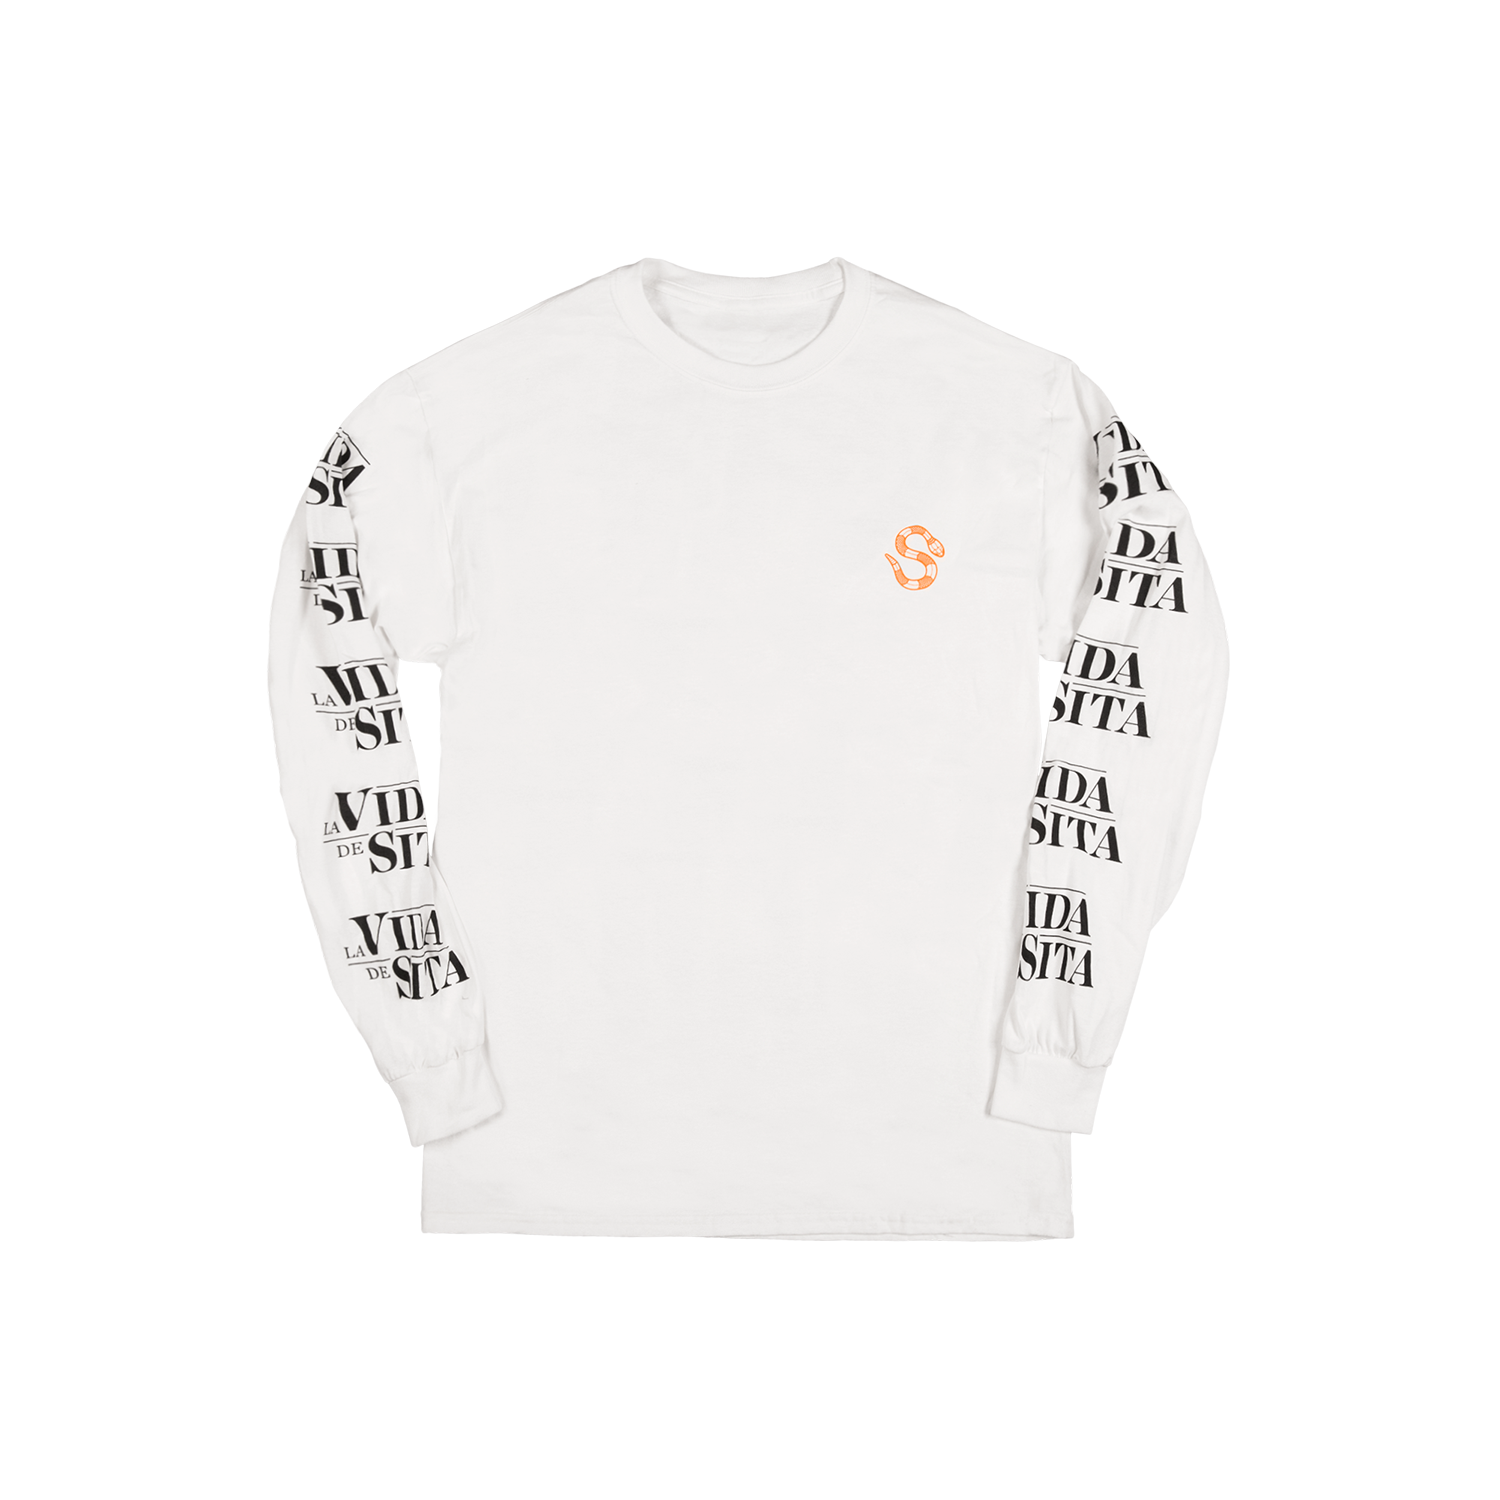 La Vida de Sita white T-shirt Long-sleeve back printed